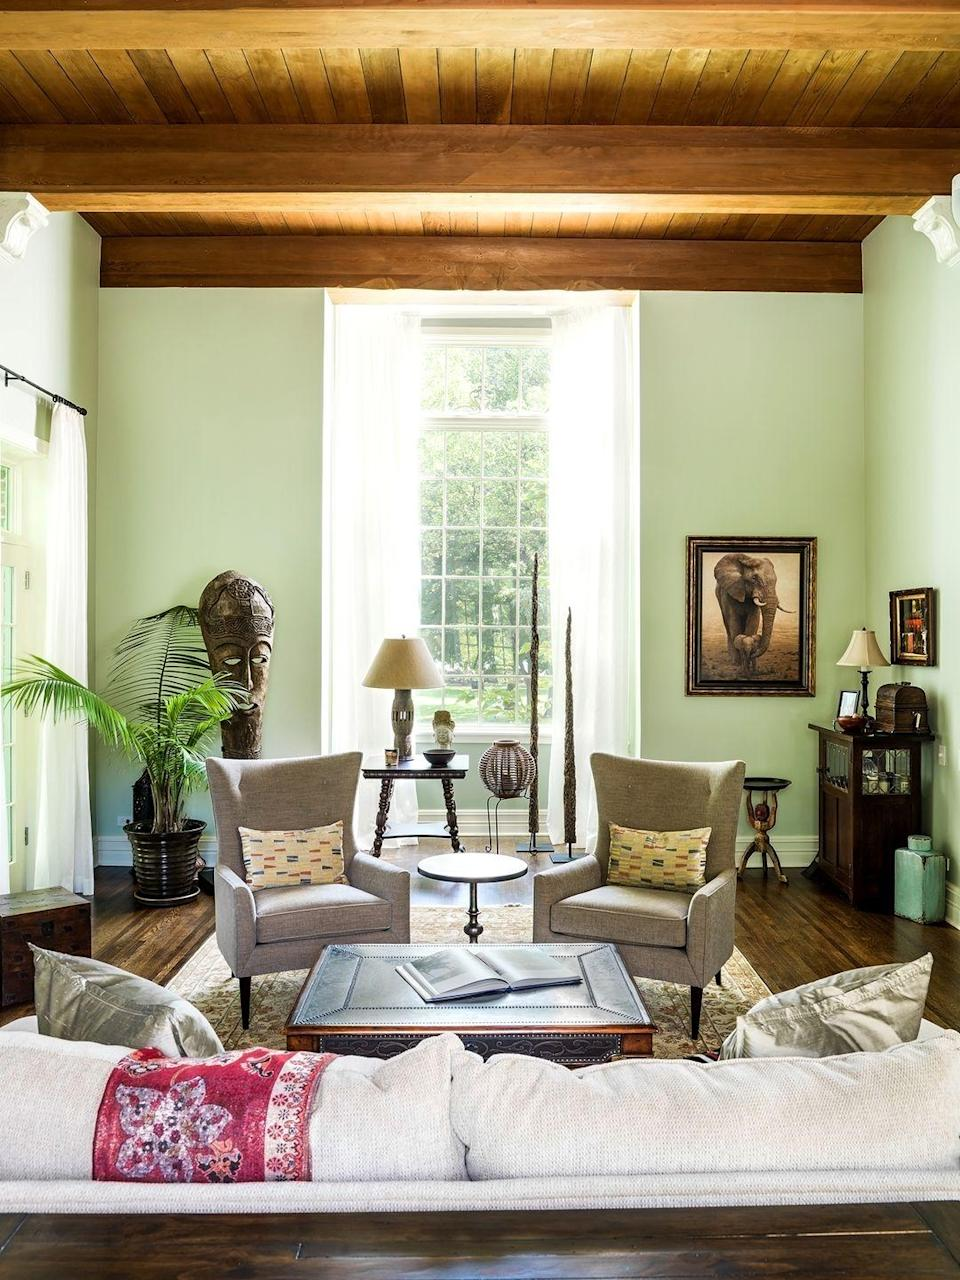 "<p>""With its soft, restful tones, seafoam green, like <a href=""https://www.benjaminmoore.com/en-us/color-overview/find-your-color/color/hc-141/hollingsworth-green"" rel=""nofollow noopener"" target=""_blank"" data-ylk=""slk:Benjamin Moore Hollingsworth Green"" class=""link rapid-noclick-resp"">Benjamin Moore Hollingsworth Green</a>, is having its moment. It brings a gauzy soft feel to living spaces, reminding us of days at the sea."" — <a href=""https://mlavenderinteriors.com/"" rel=""nofollow noopener"" target=""_blank"" data-ylk=""slk:Mark Lavender"" class=""link rapid-noclick-resp"">Mark Lavender</a> </p>"